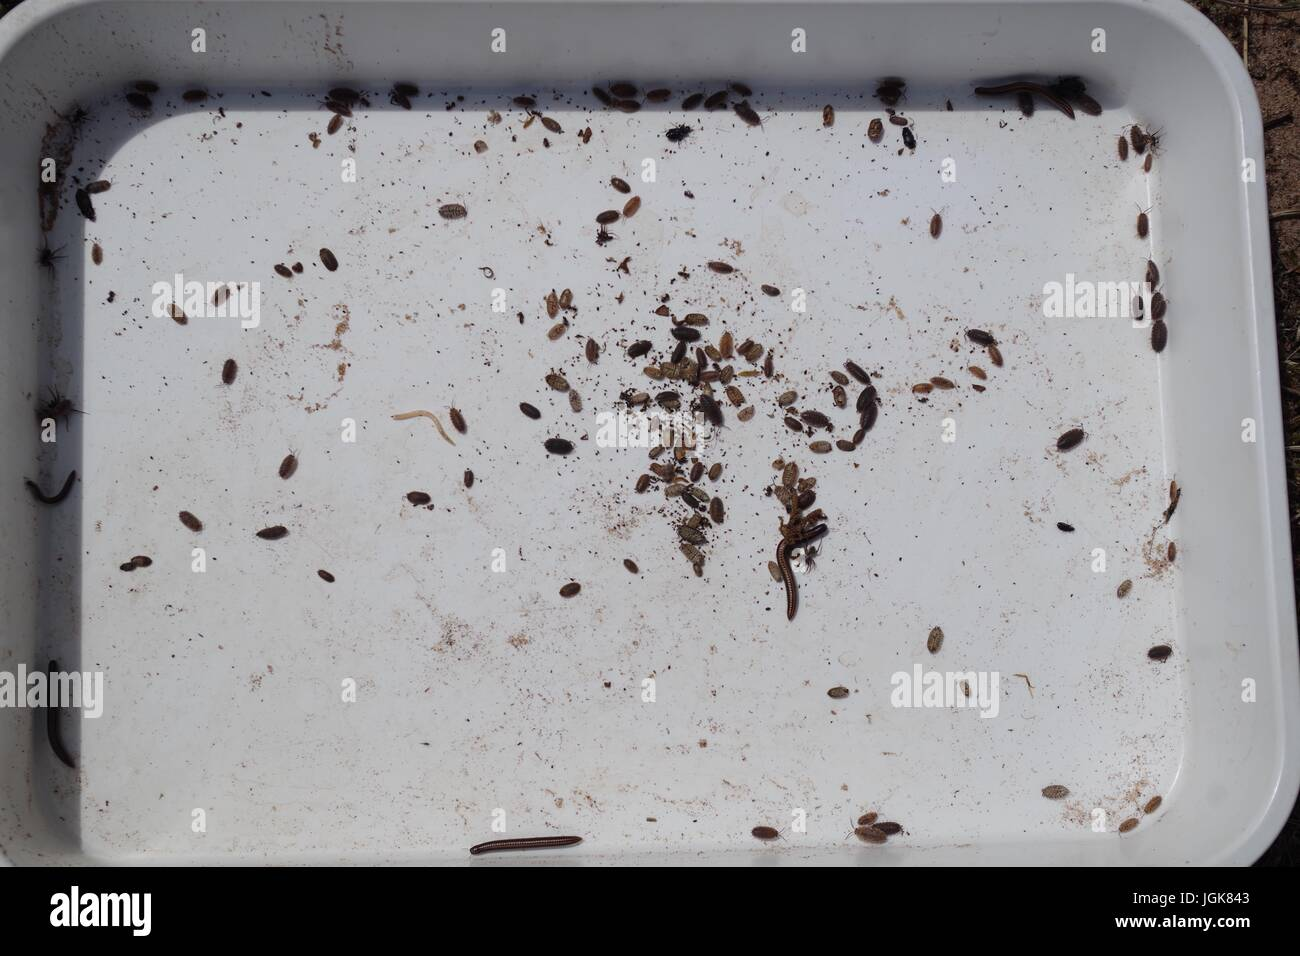 Sample Tray of Pitfall Trap Collected Invertebrates for an Ecological Study of Beetle Population Distribution. Dawlish - Stock Image